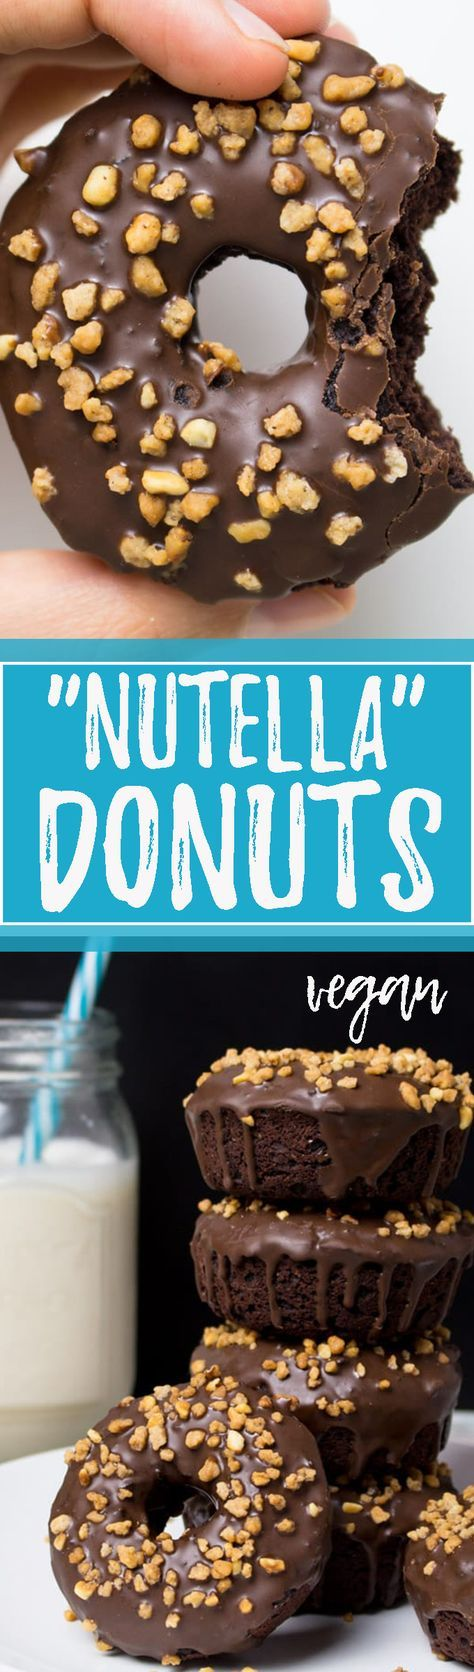 """These vegan donuts with chocolate and hazelnuts (aka """"Nutella"""" donuts) are my absolute favorite! And the best thing is that they're way healthier than regular donuts! <3 